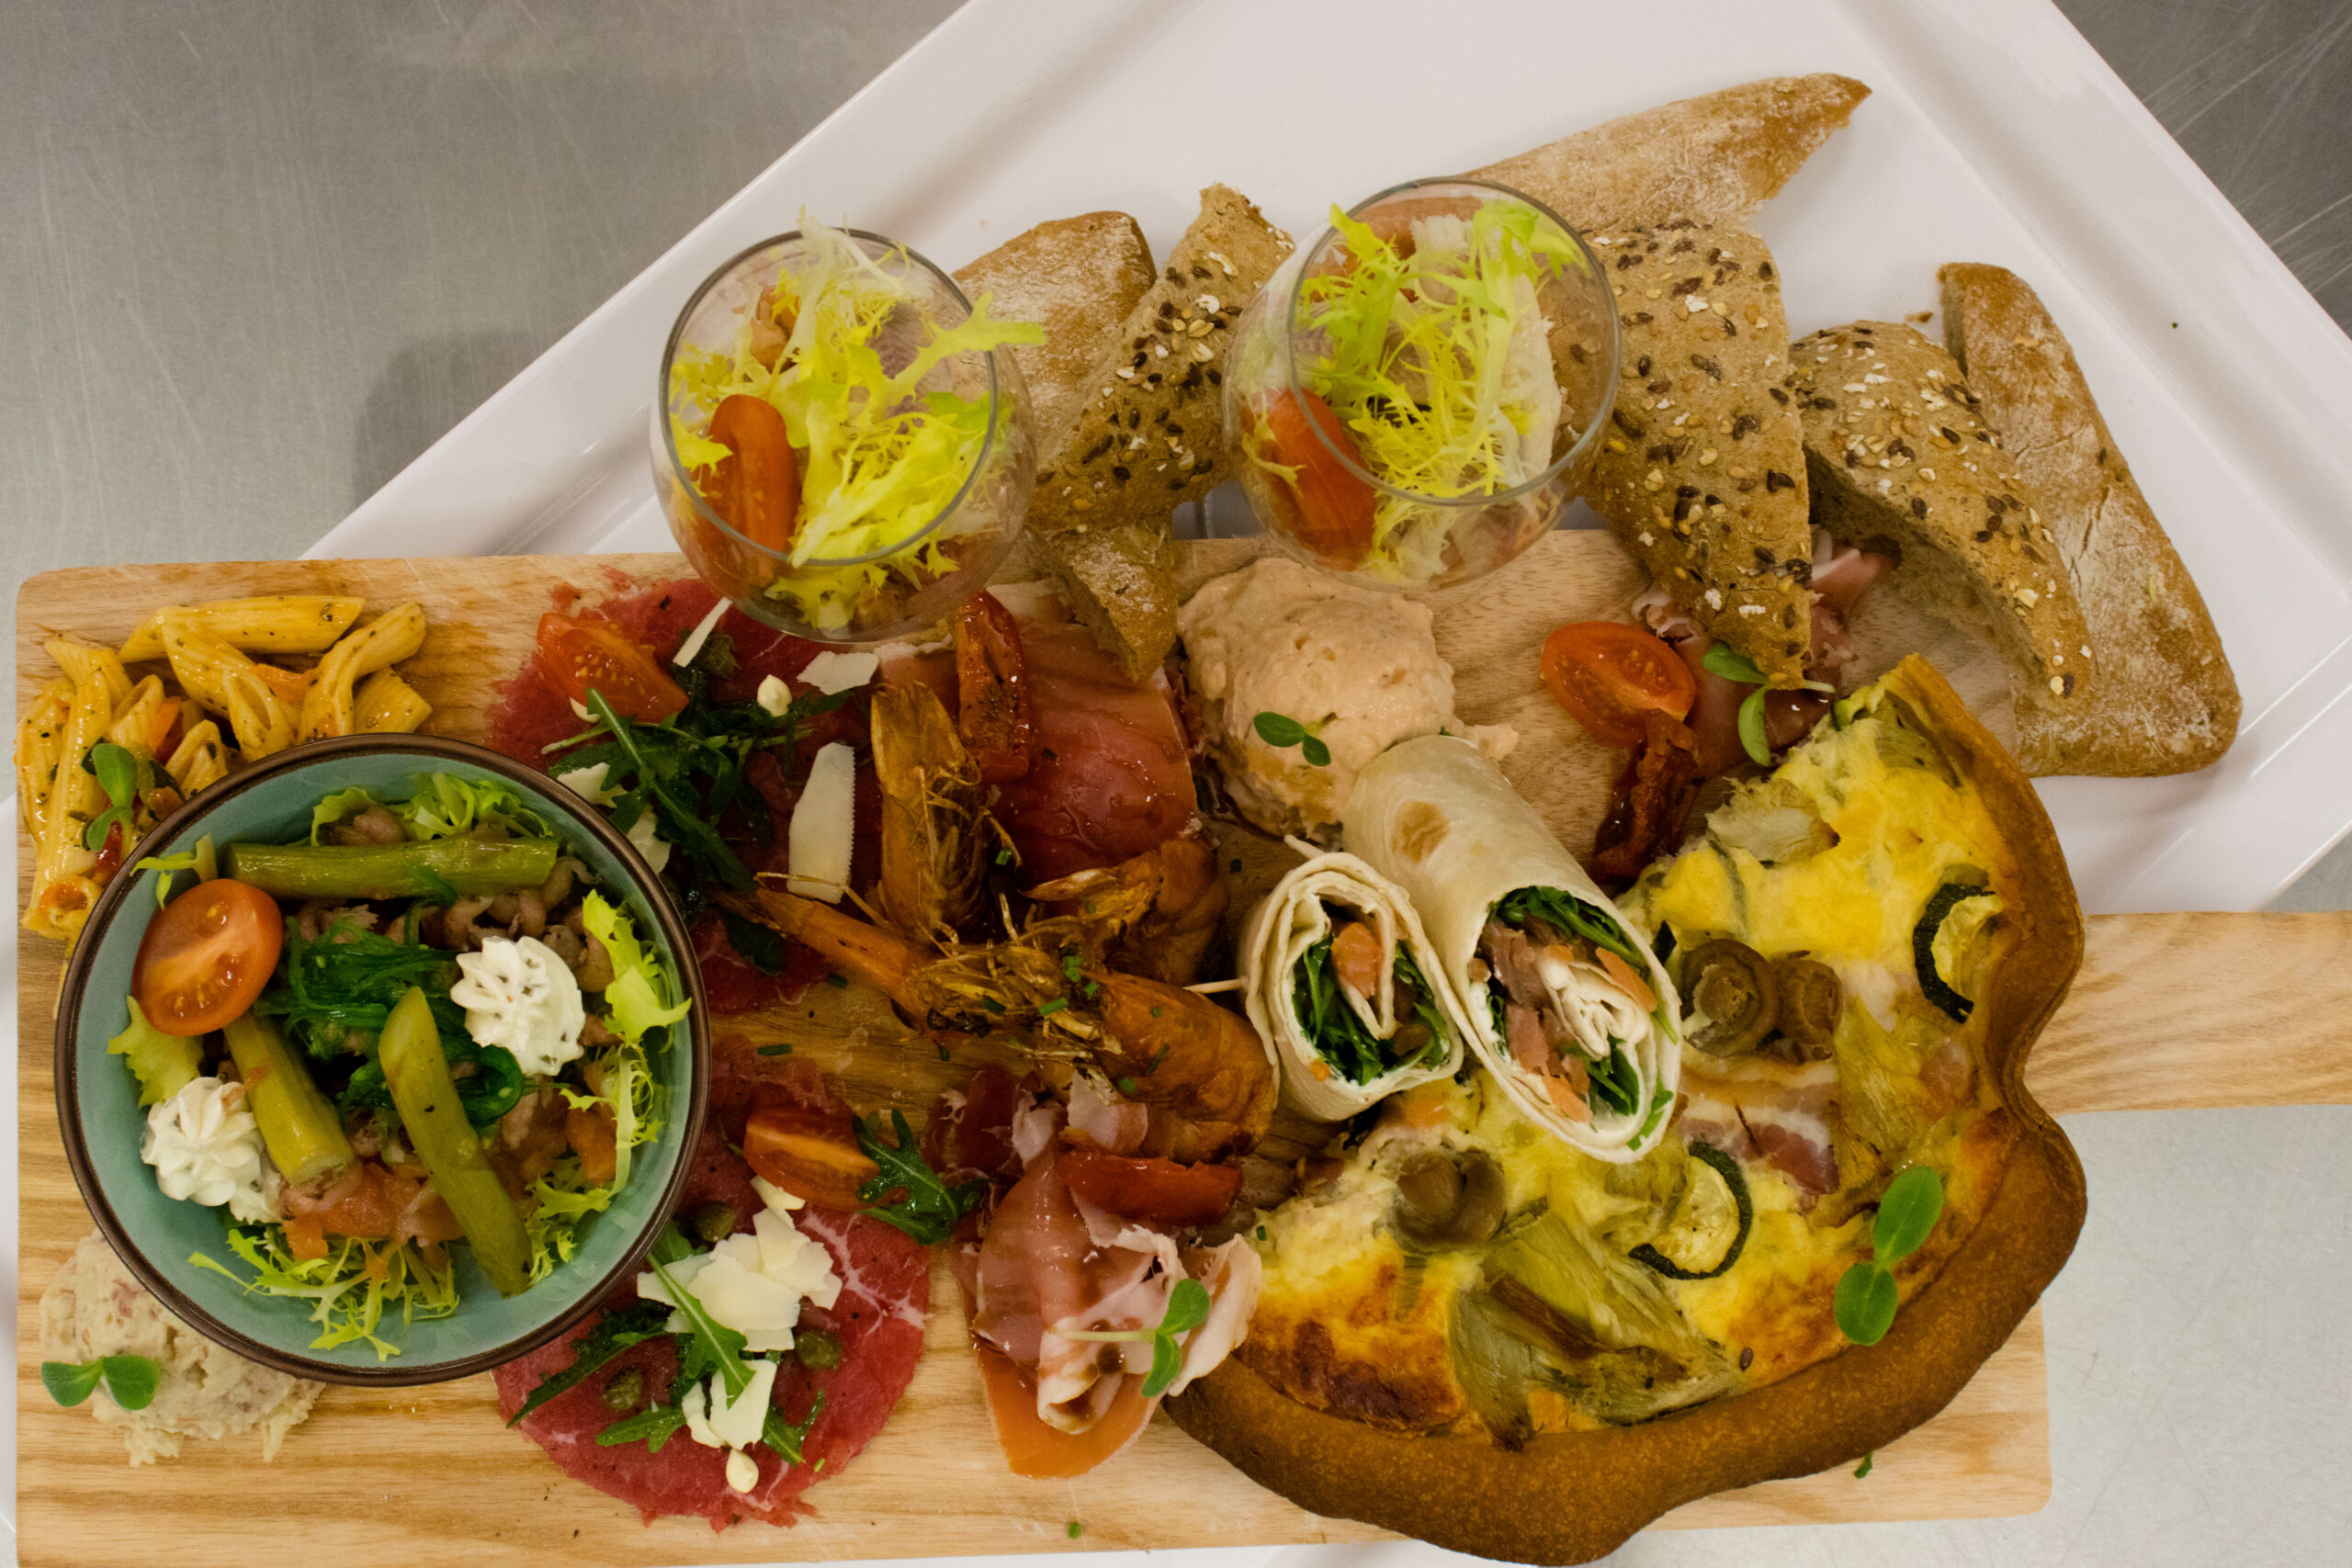 hapjes, catering, amuse, fingerfood, catering, hapjes